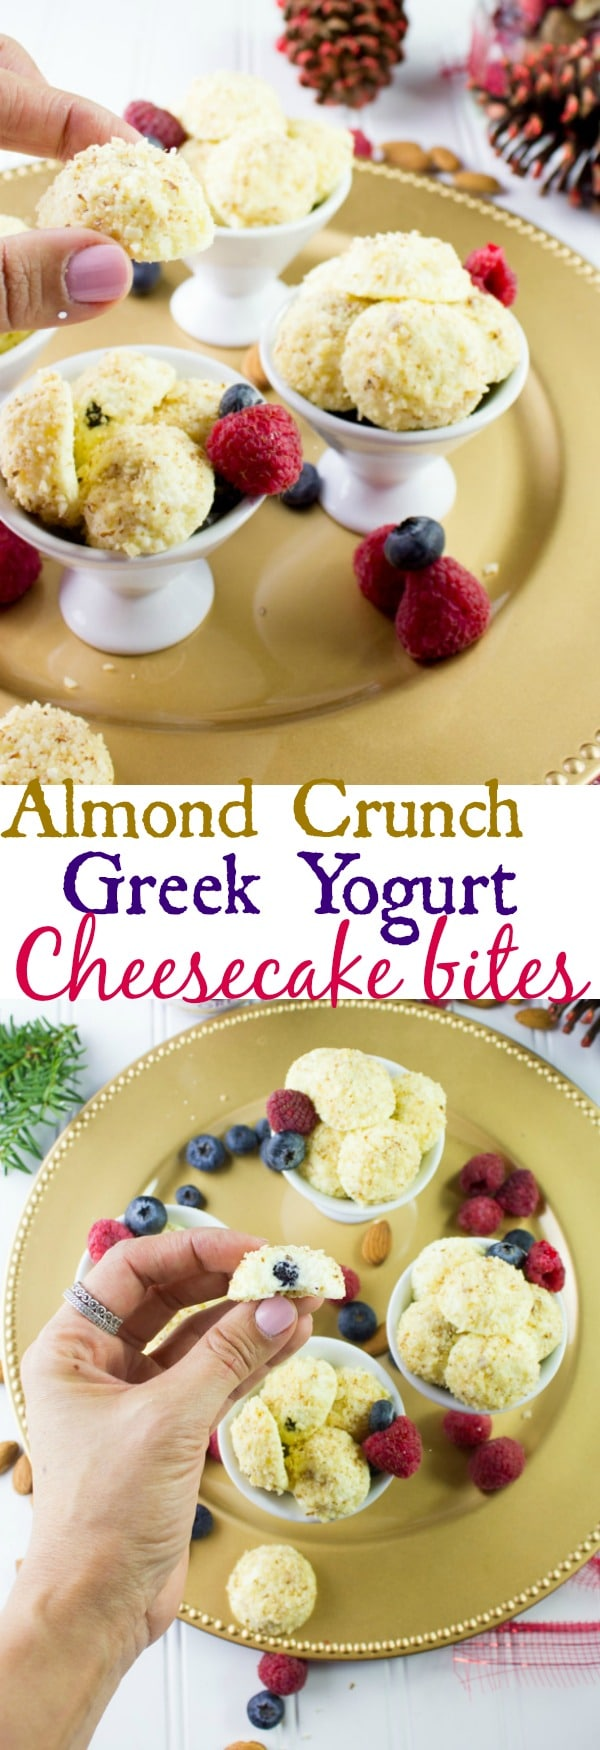 This Almond Crunch Greek Yogurt Cheesecake Bites recipe features a creamy dreamy vanilla cheesecake with a crunchy almond coating. These bite-sized desserts are made with only three ingredients, bake for only 10 mins and keep in the fridge for a week.#minidesserts, #cheesecakebites, #lightdesserts